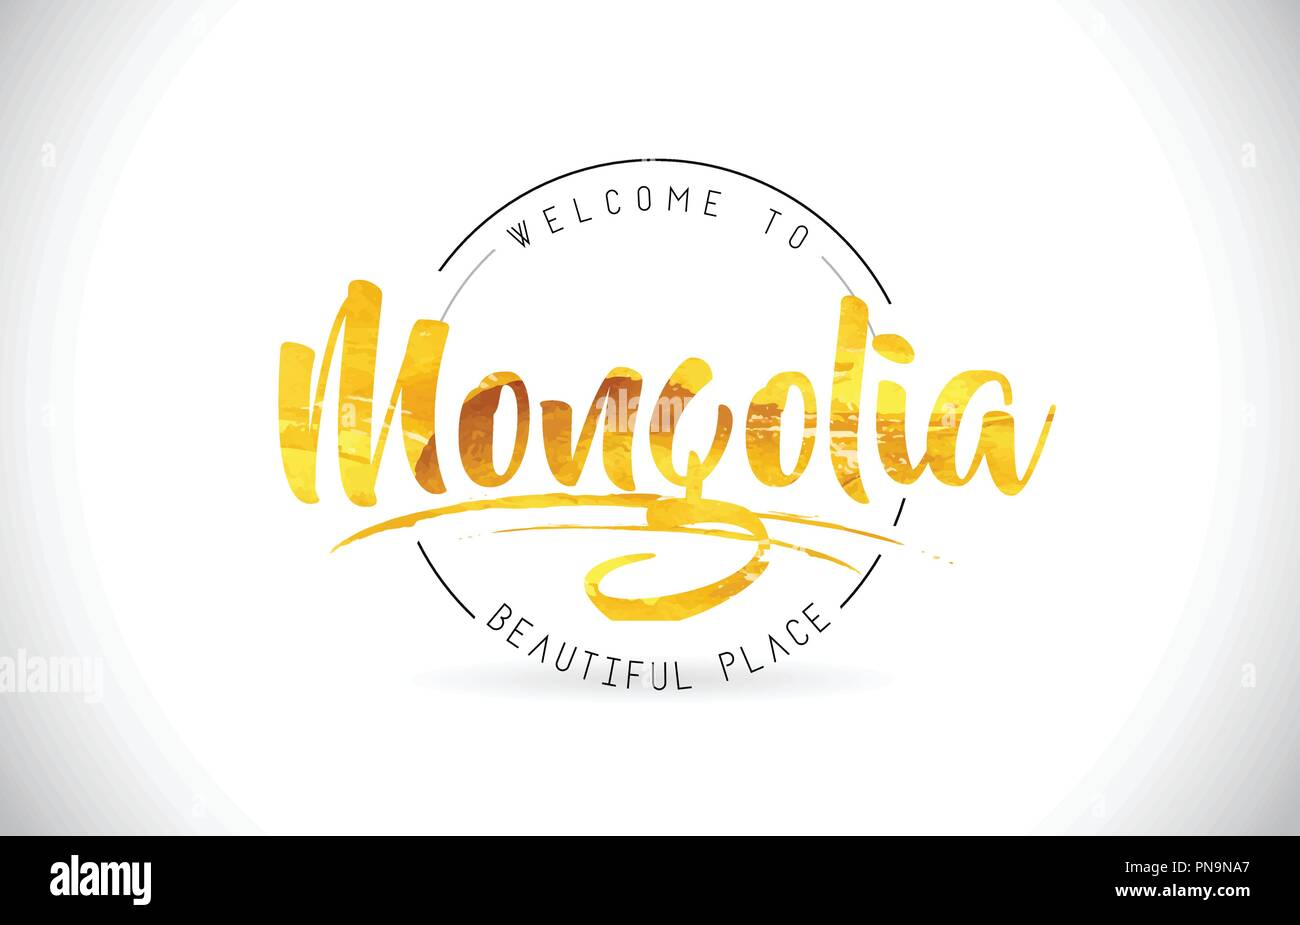 Mongolia Welcome To Word Text with Handwritten Font and Golden Texture Design Illustration Vector. - Stock Vector